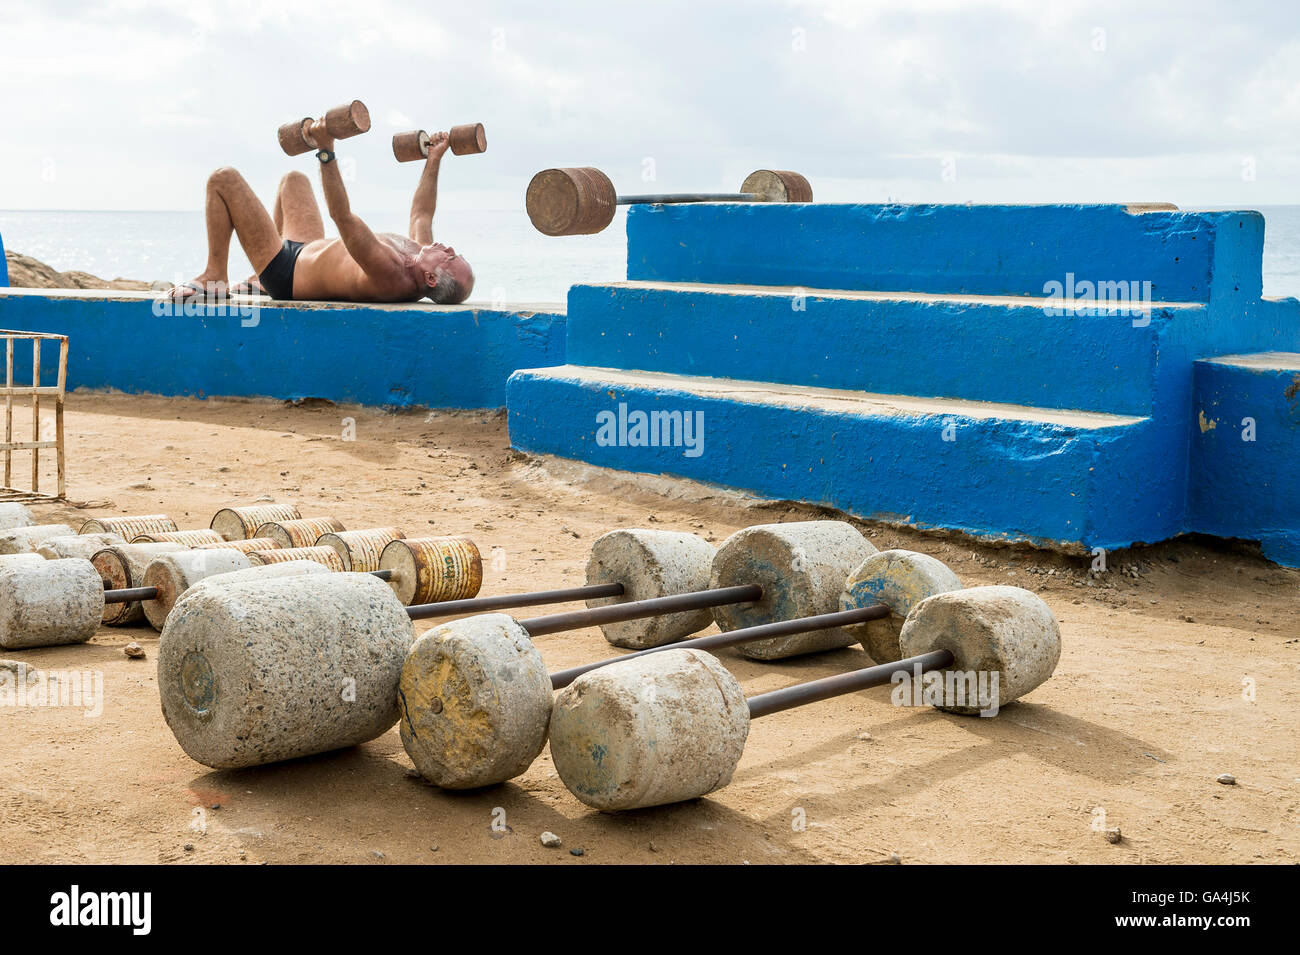 RIO DE JANEIRO - FEBRUARY 12, 2015: Brazilian man exercises at the outdoor workout station at the rocky point of - Stock Image